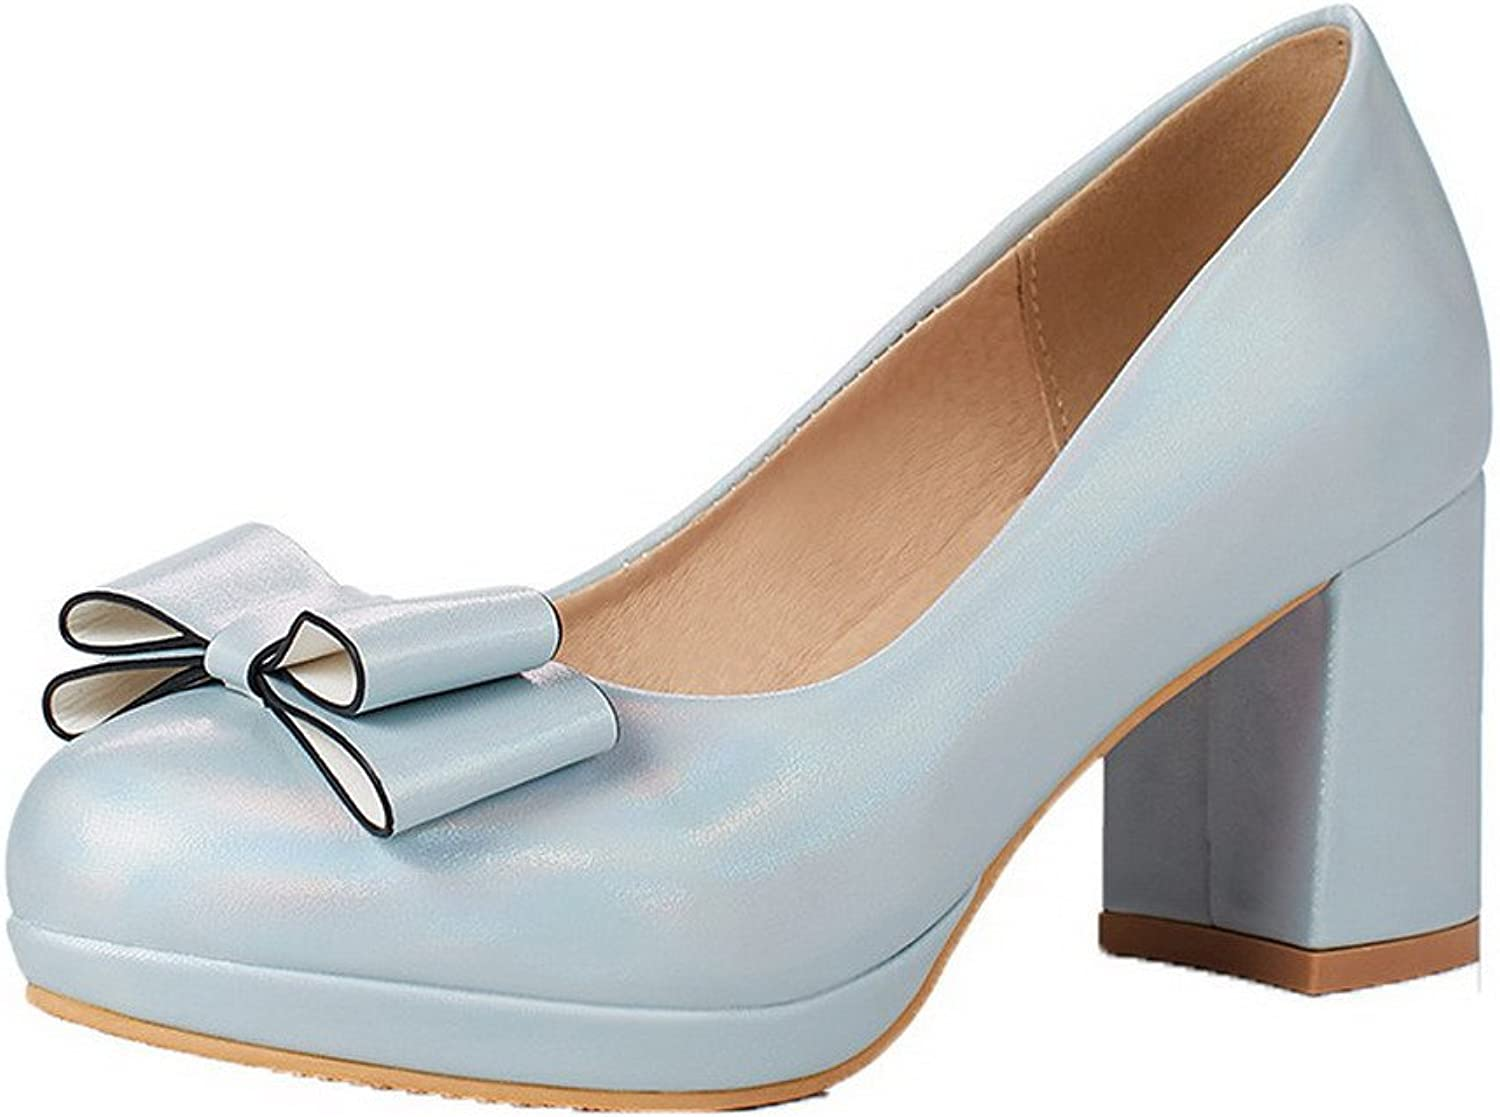 AmoonyFashion Women's PU Round Closed Toe Solid Pull-On Pumps-shoes,BUSDT003081